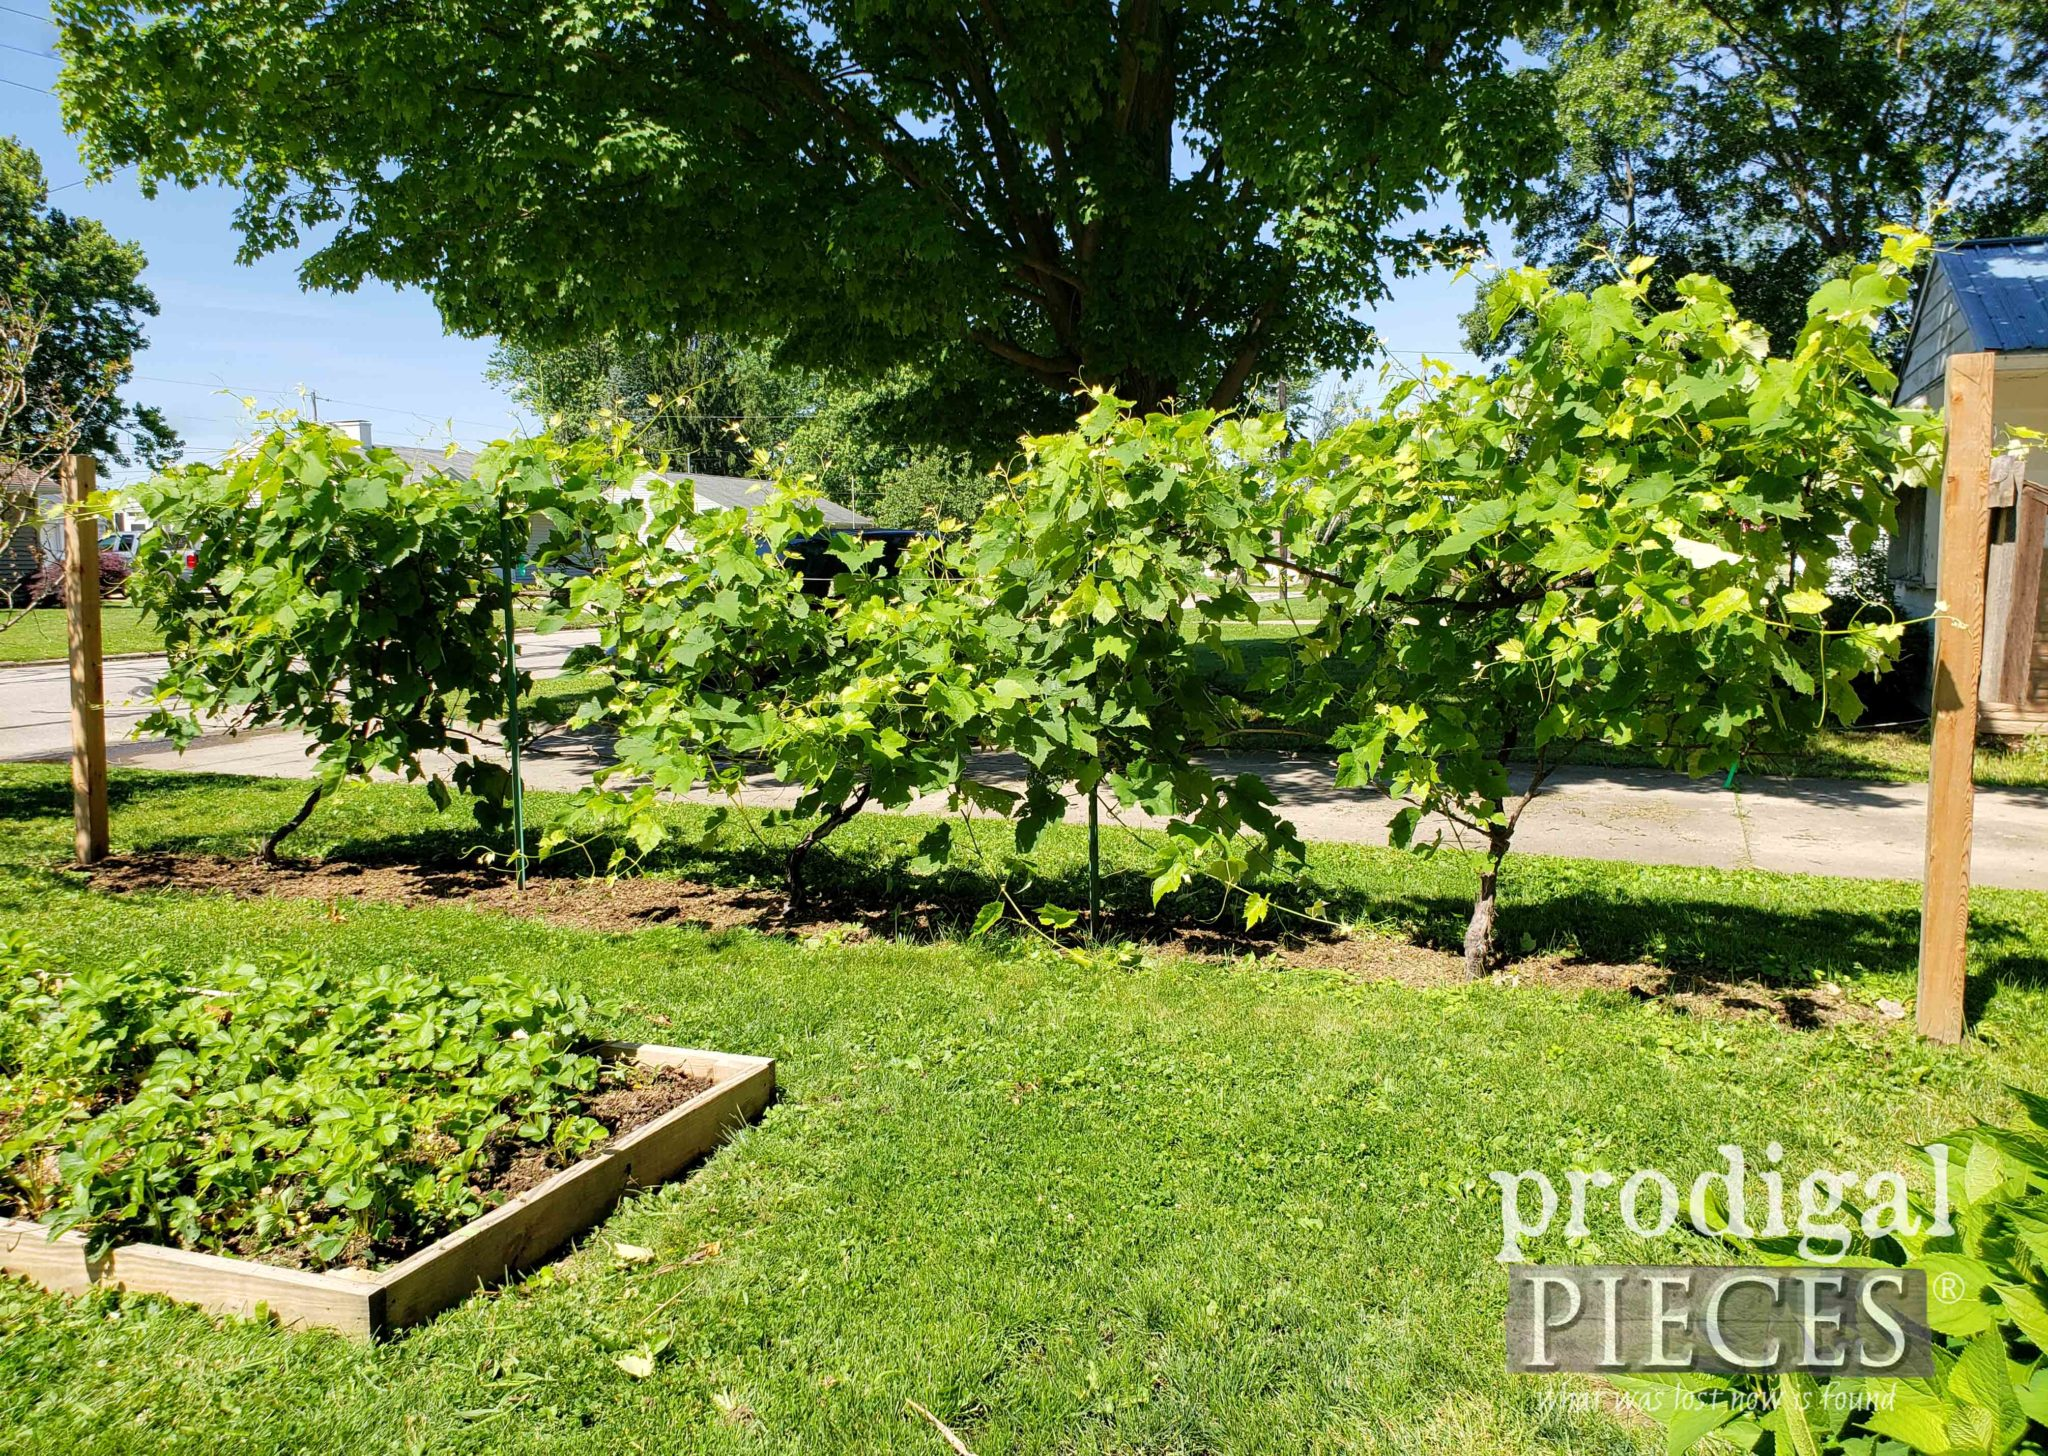 DIY Grape Arbor Using the Espalier Trellis Technique | prodigalpieces.com #prodigalpieces #diy #garden #food